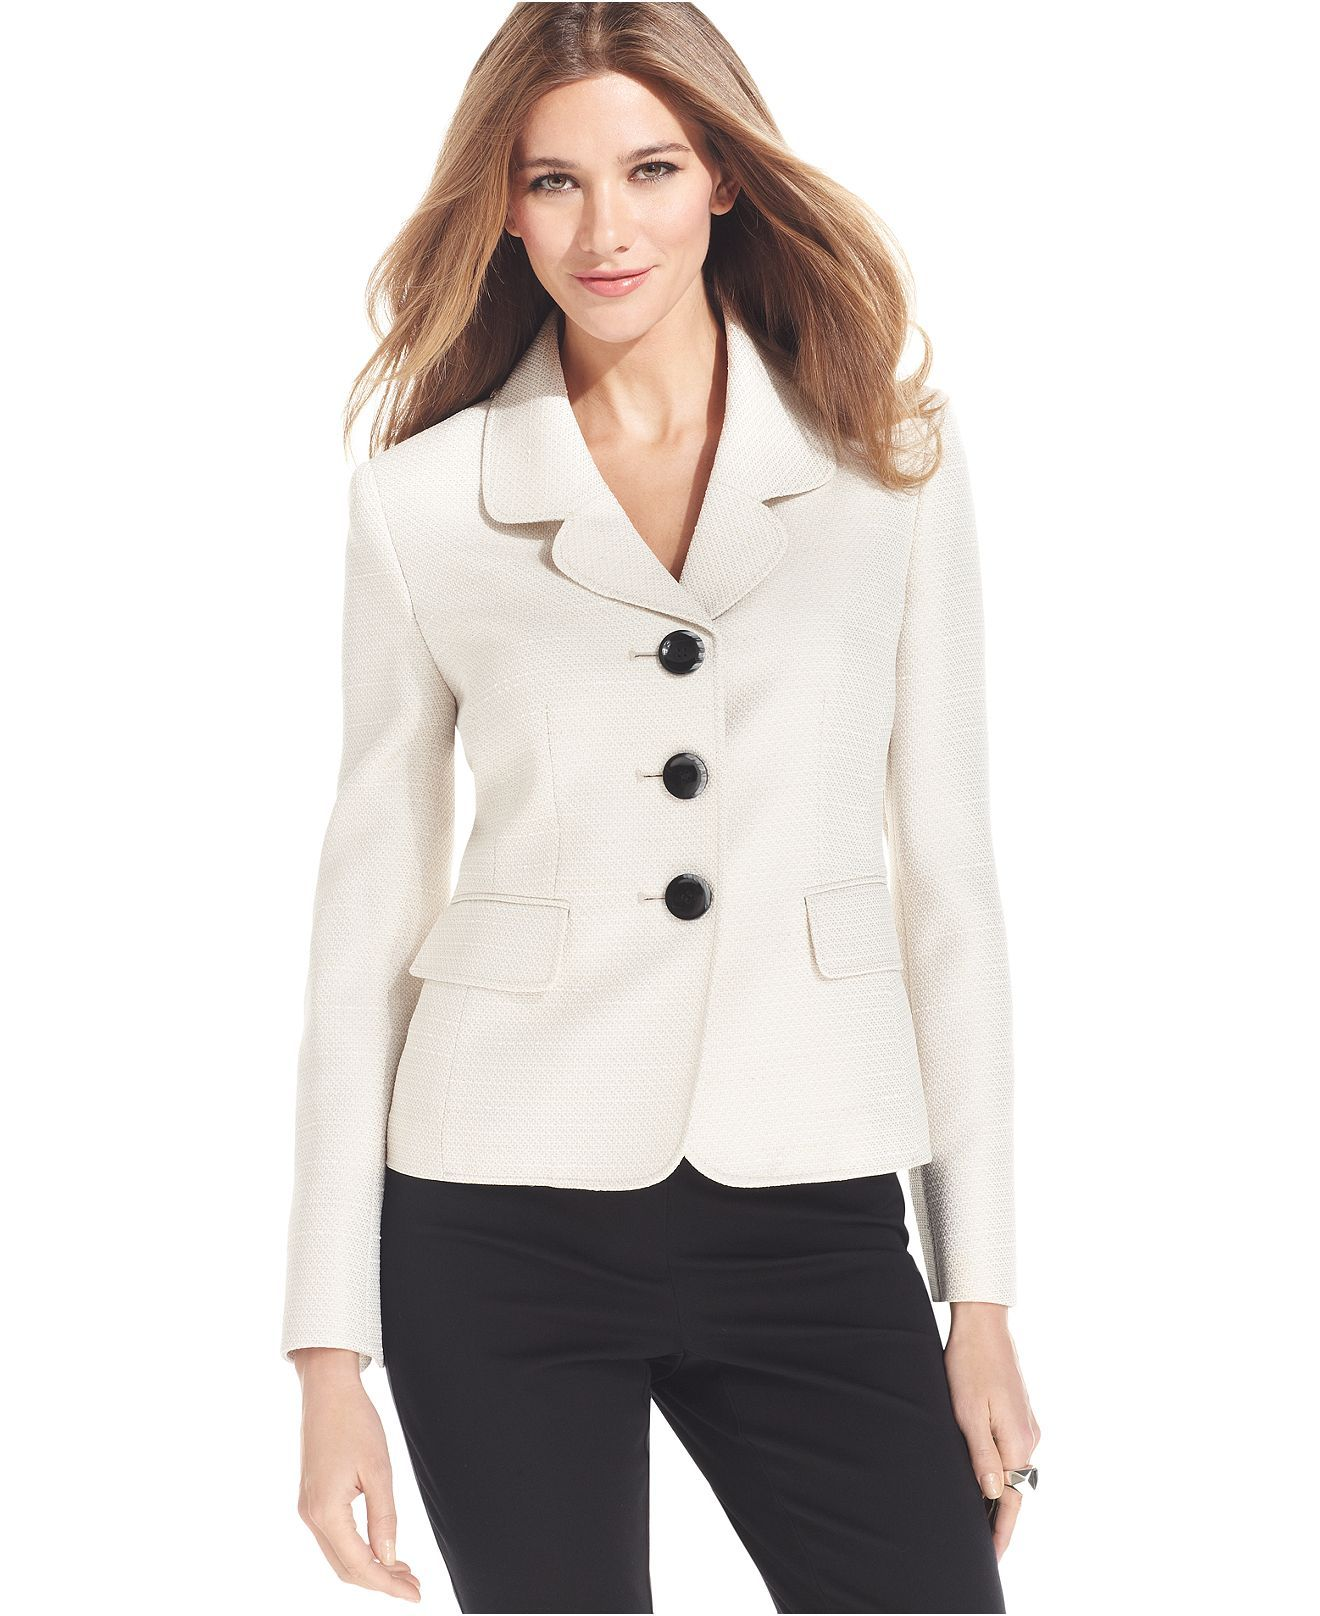 Overstock uses cookies to ensure you get the best experience on our site. If you continue on our site, you consent to the use of such cookies. Learn more. OK Jackets. Clothing & Shoes / Women Ladies' Black Lambskin, Leather Zip Front Blazer Jacket. 4 Reviews. SALE. More Options.